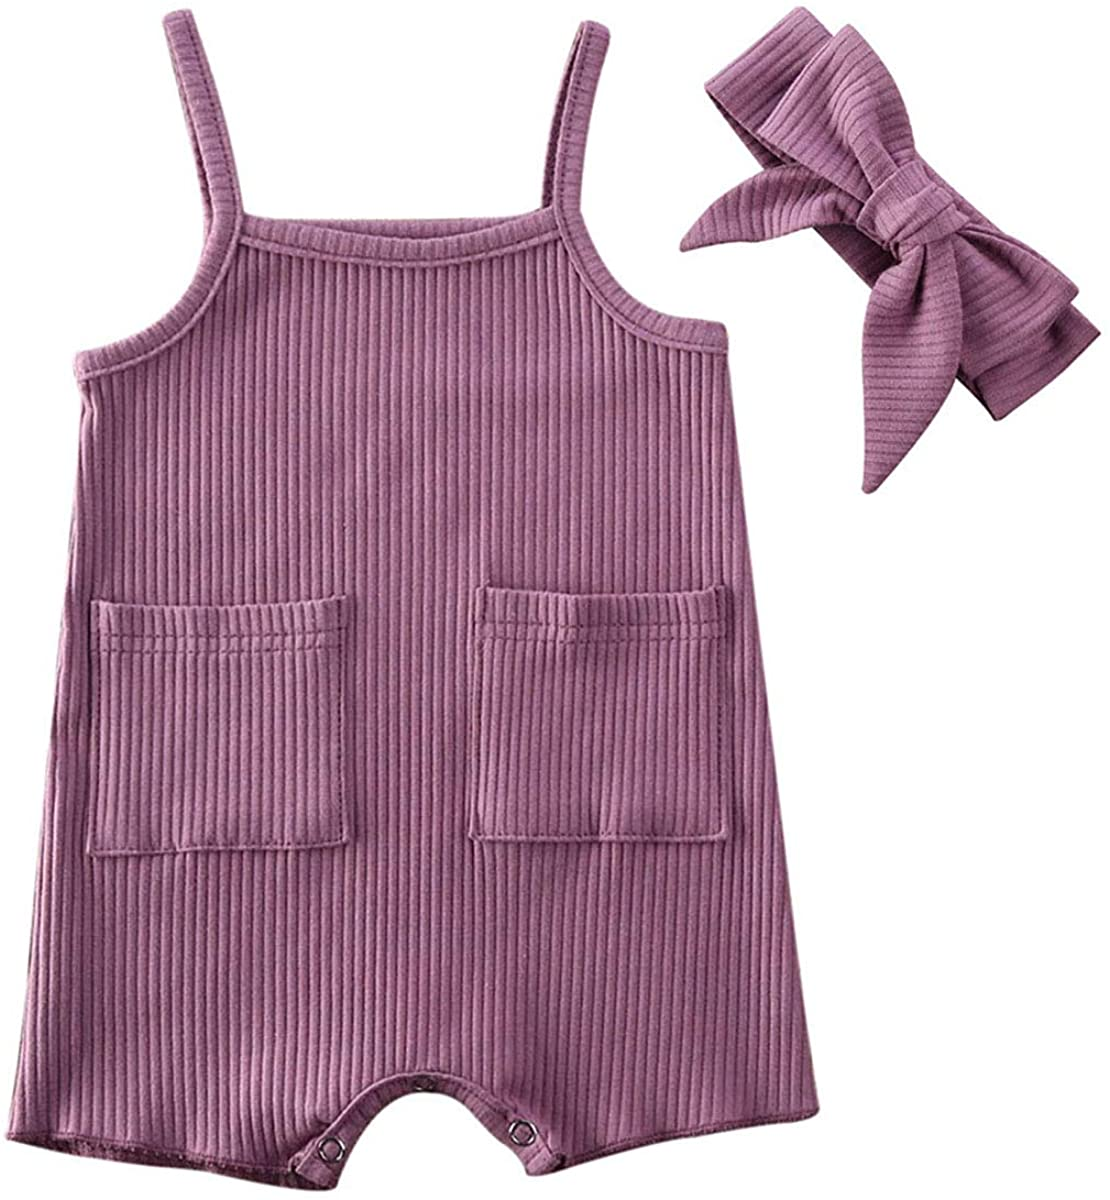 Toddler Baby Girl Summer Clothes Knit Halter Sleeveless Pockets Romper Jumpsuit Bodysuit One Piece Outfit with Headband